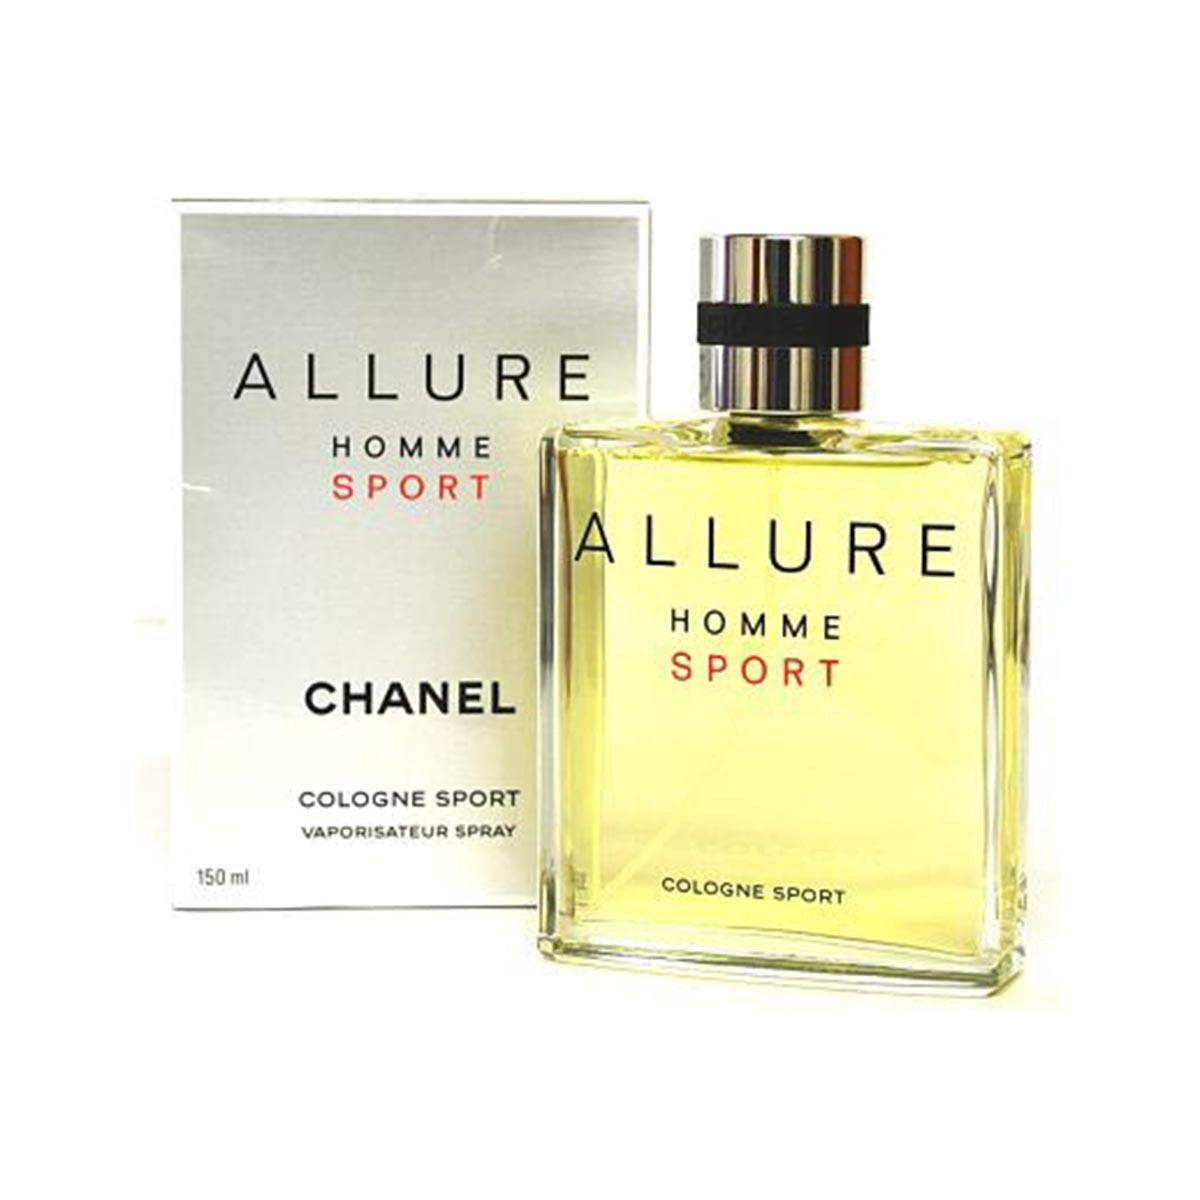 Chanel fragrances Allure Homme Sport Eau De Cologne 150ml